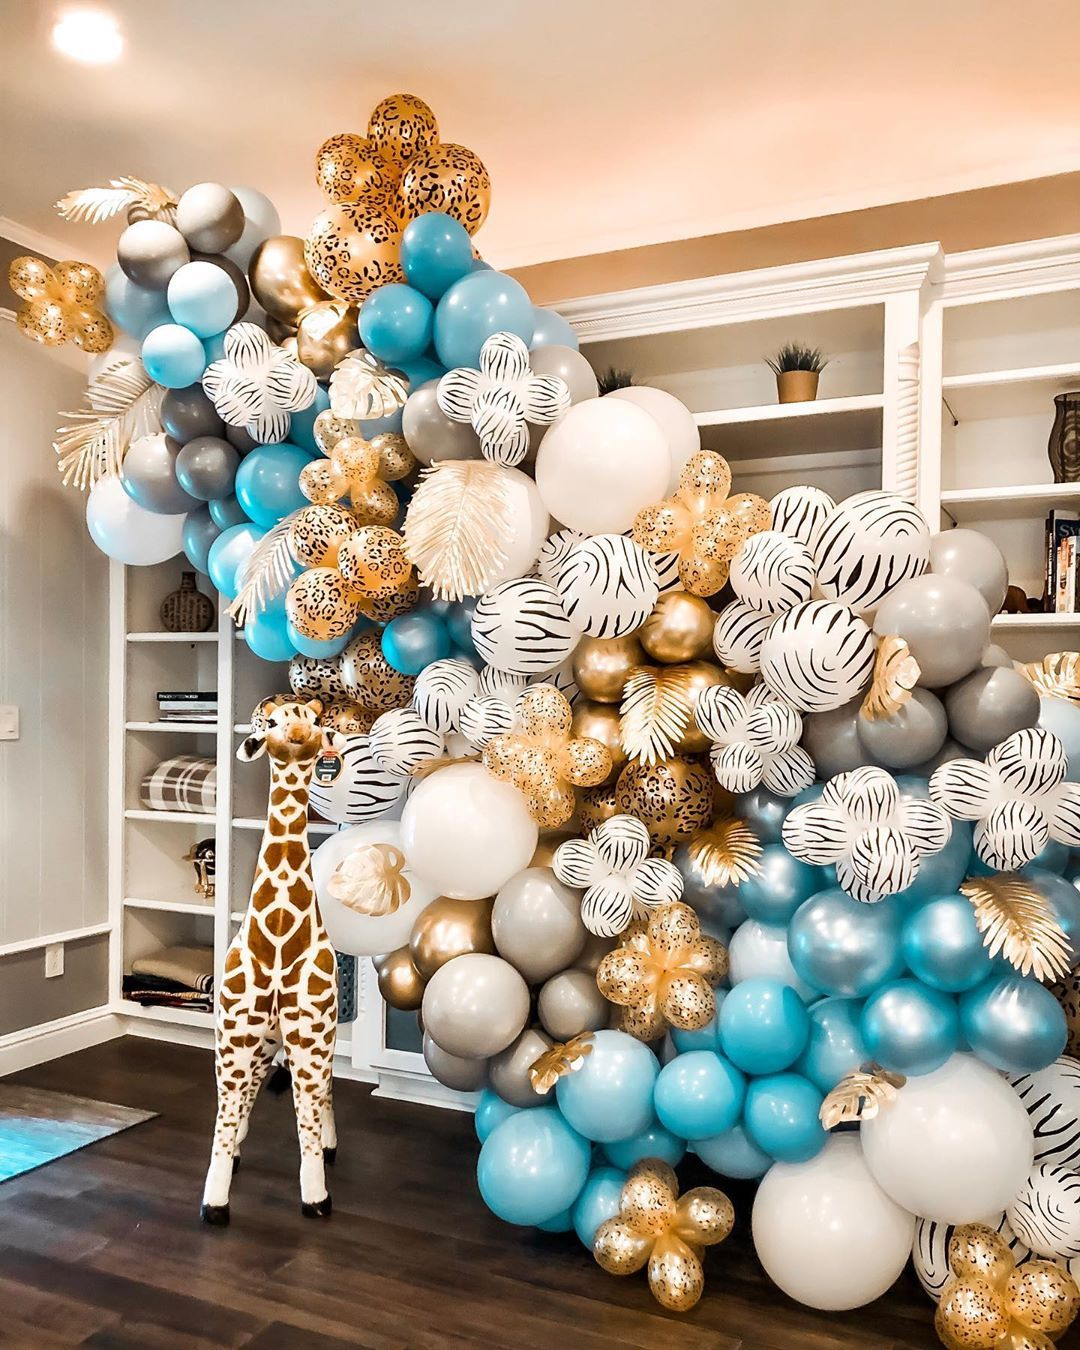 "Balloon Therapy on Instagram: ""A wild one is on the way! 🦒💙 Fun safari backdrop for a sweet baby shower!"""